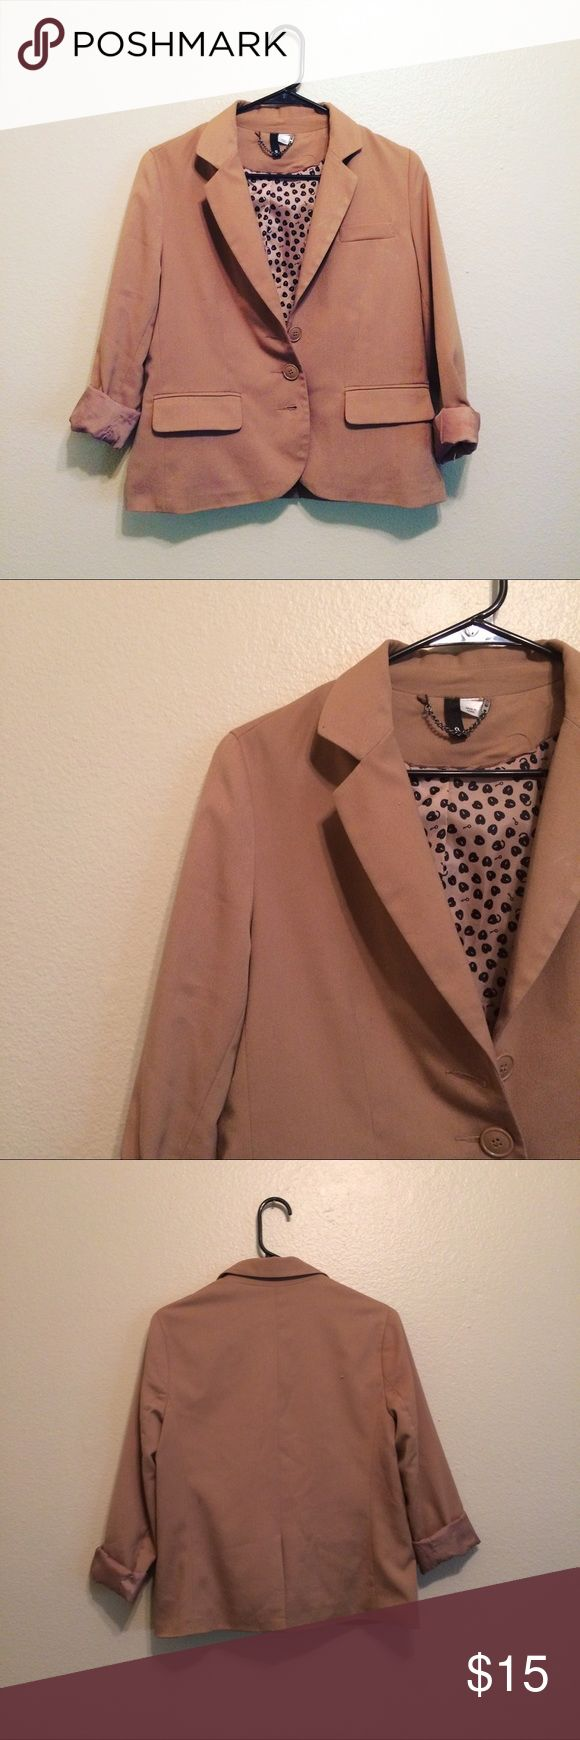 H&M Camel Blazer Perfect blazer to sharpen any outfit! I need everything gone so I will accept all reasonable bundle offers :) H&M Jackets & Coats Blazers